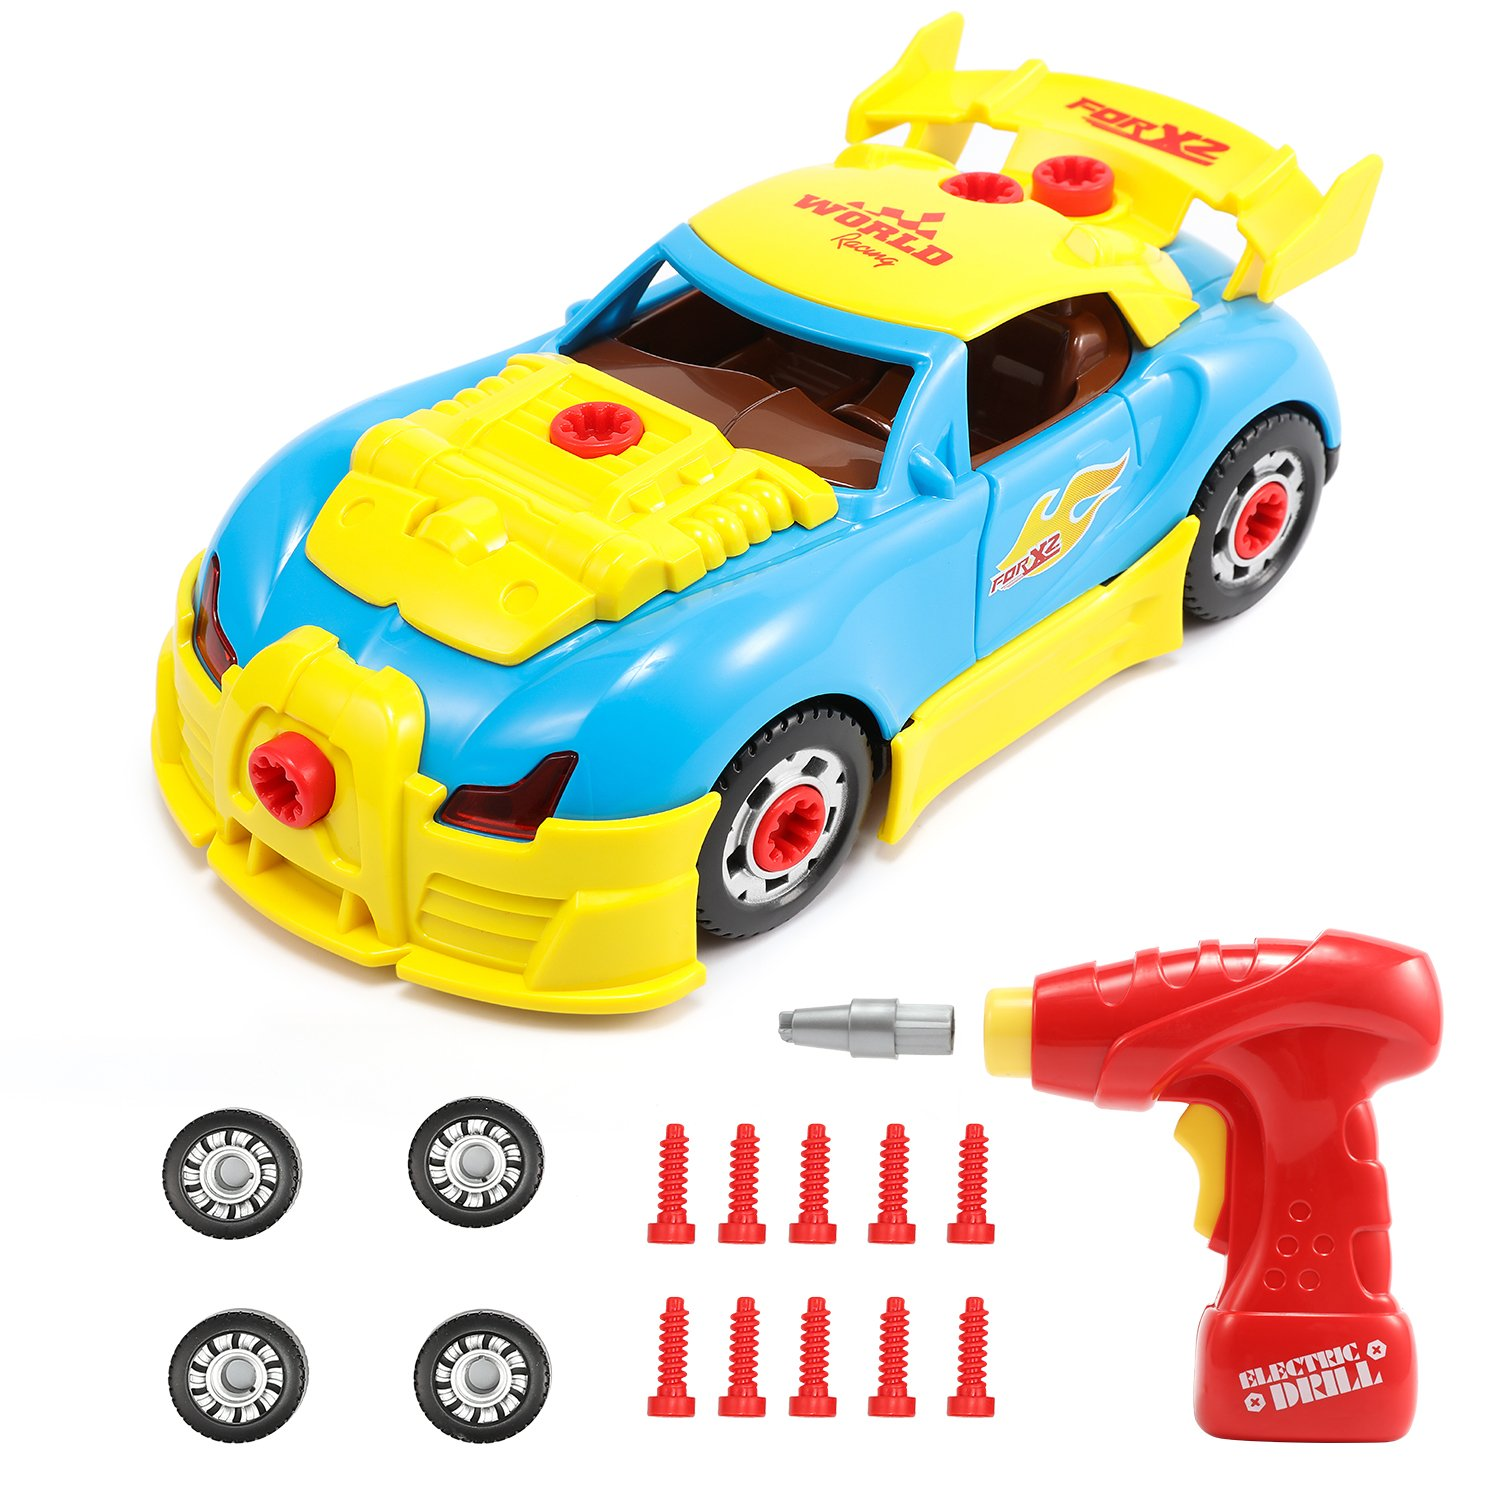 Magicfly Take Apart Car with Tool Drill, Take-A-Part World Racing Car Toy for Kids of ages 3+, 30 Pieces